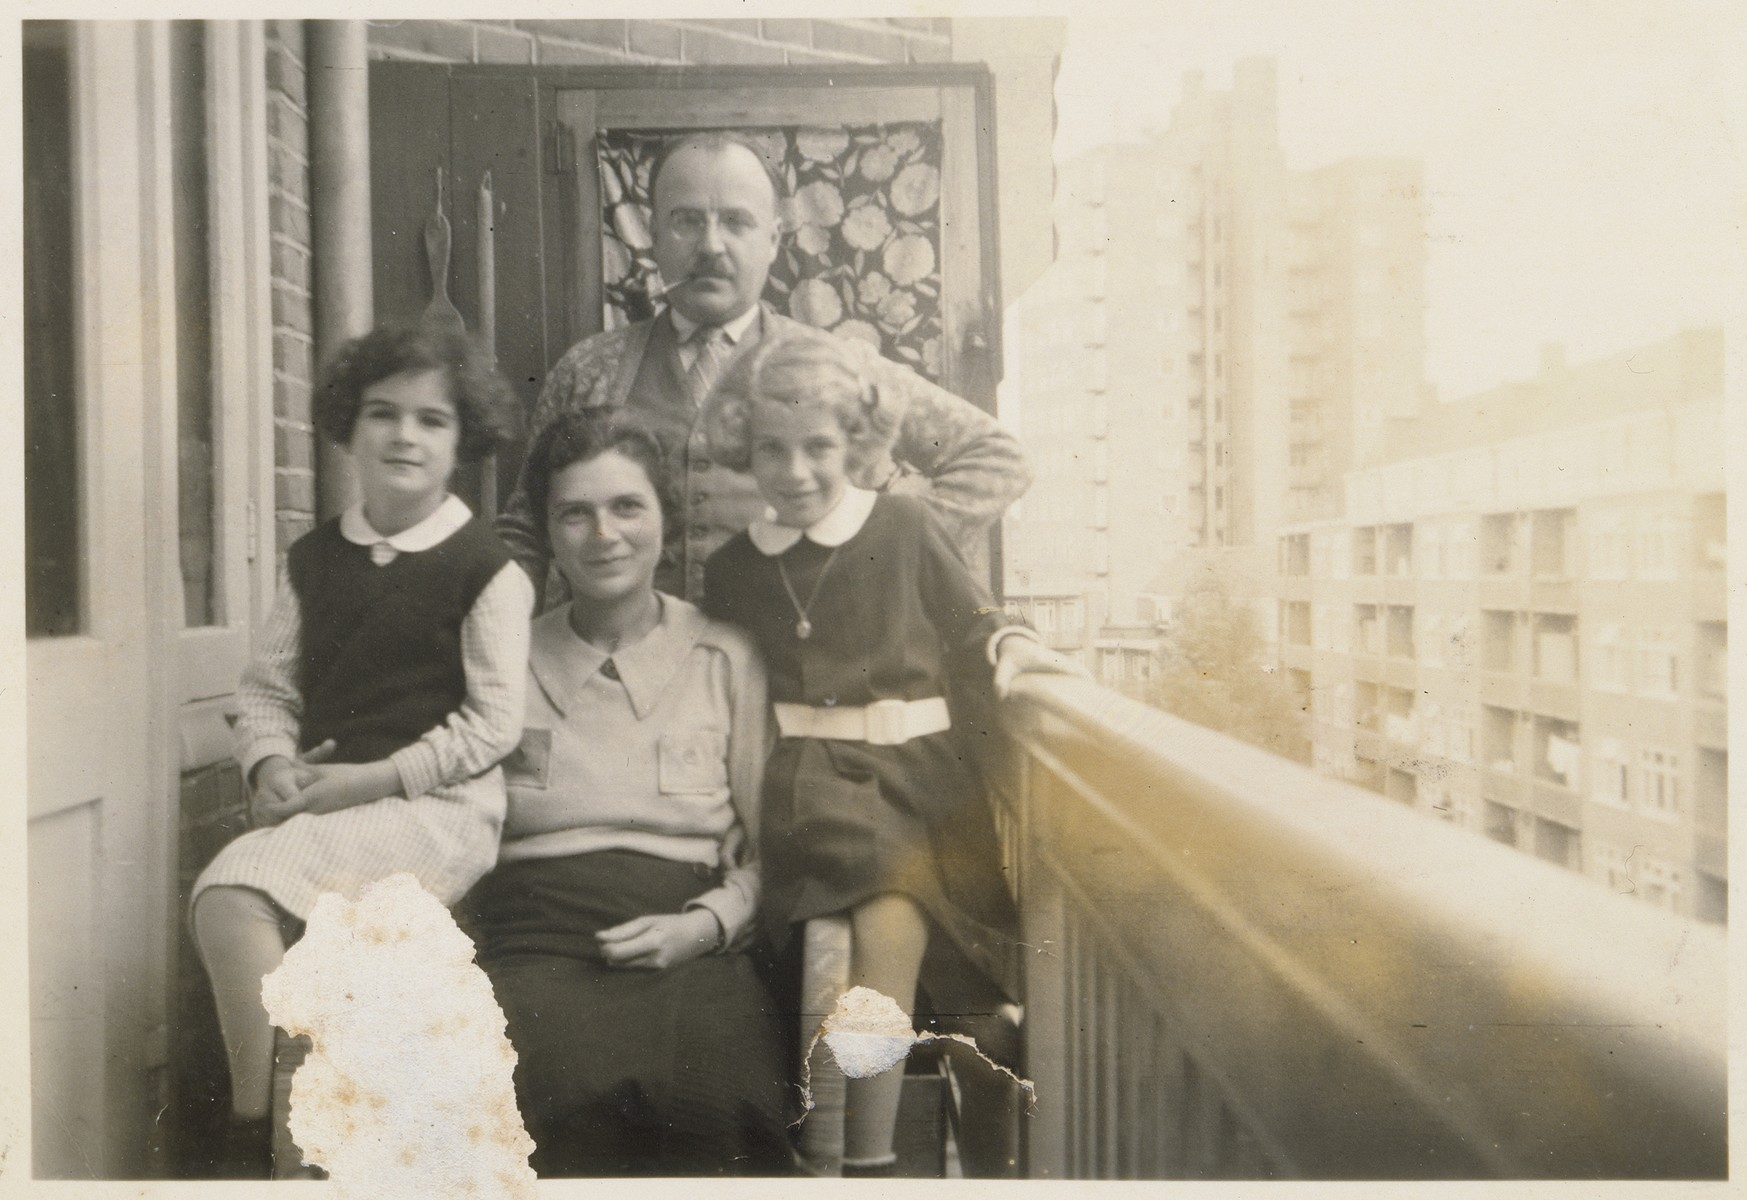 Members of the Ledermann family, Jewish refugees from Berlin, pose outside on the terrace of their apartment in Amsterdam.  Pictured are Franz and Ilse Ledermann and their two daughters, Barbara and Susanna.